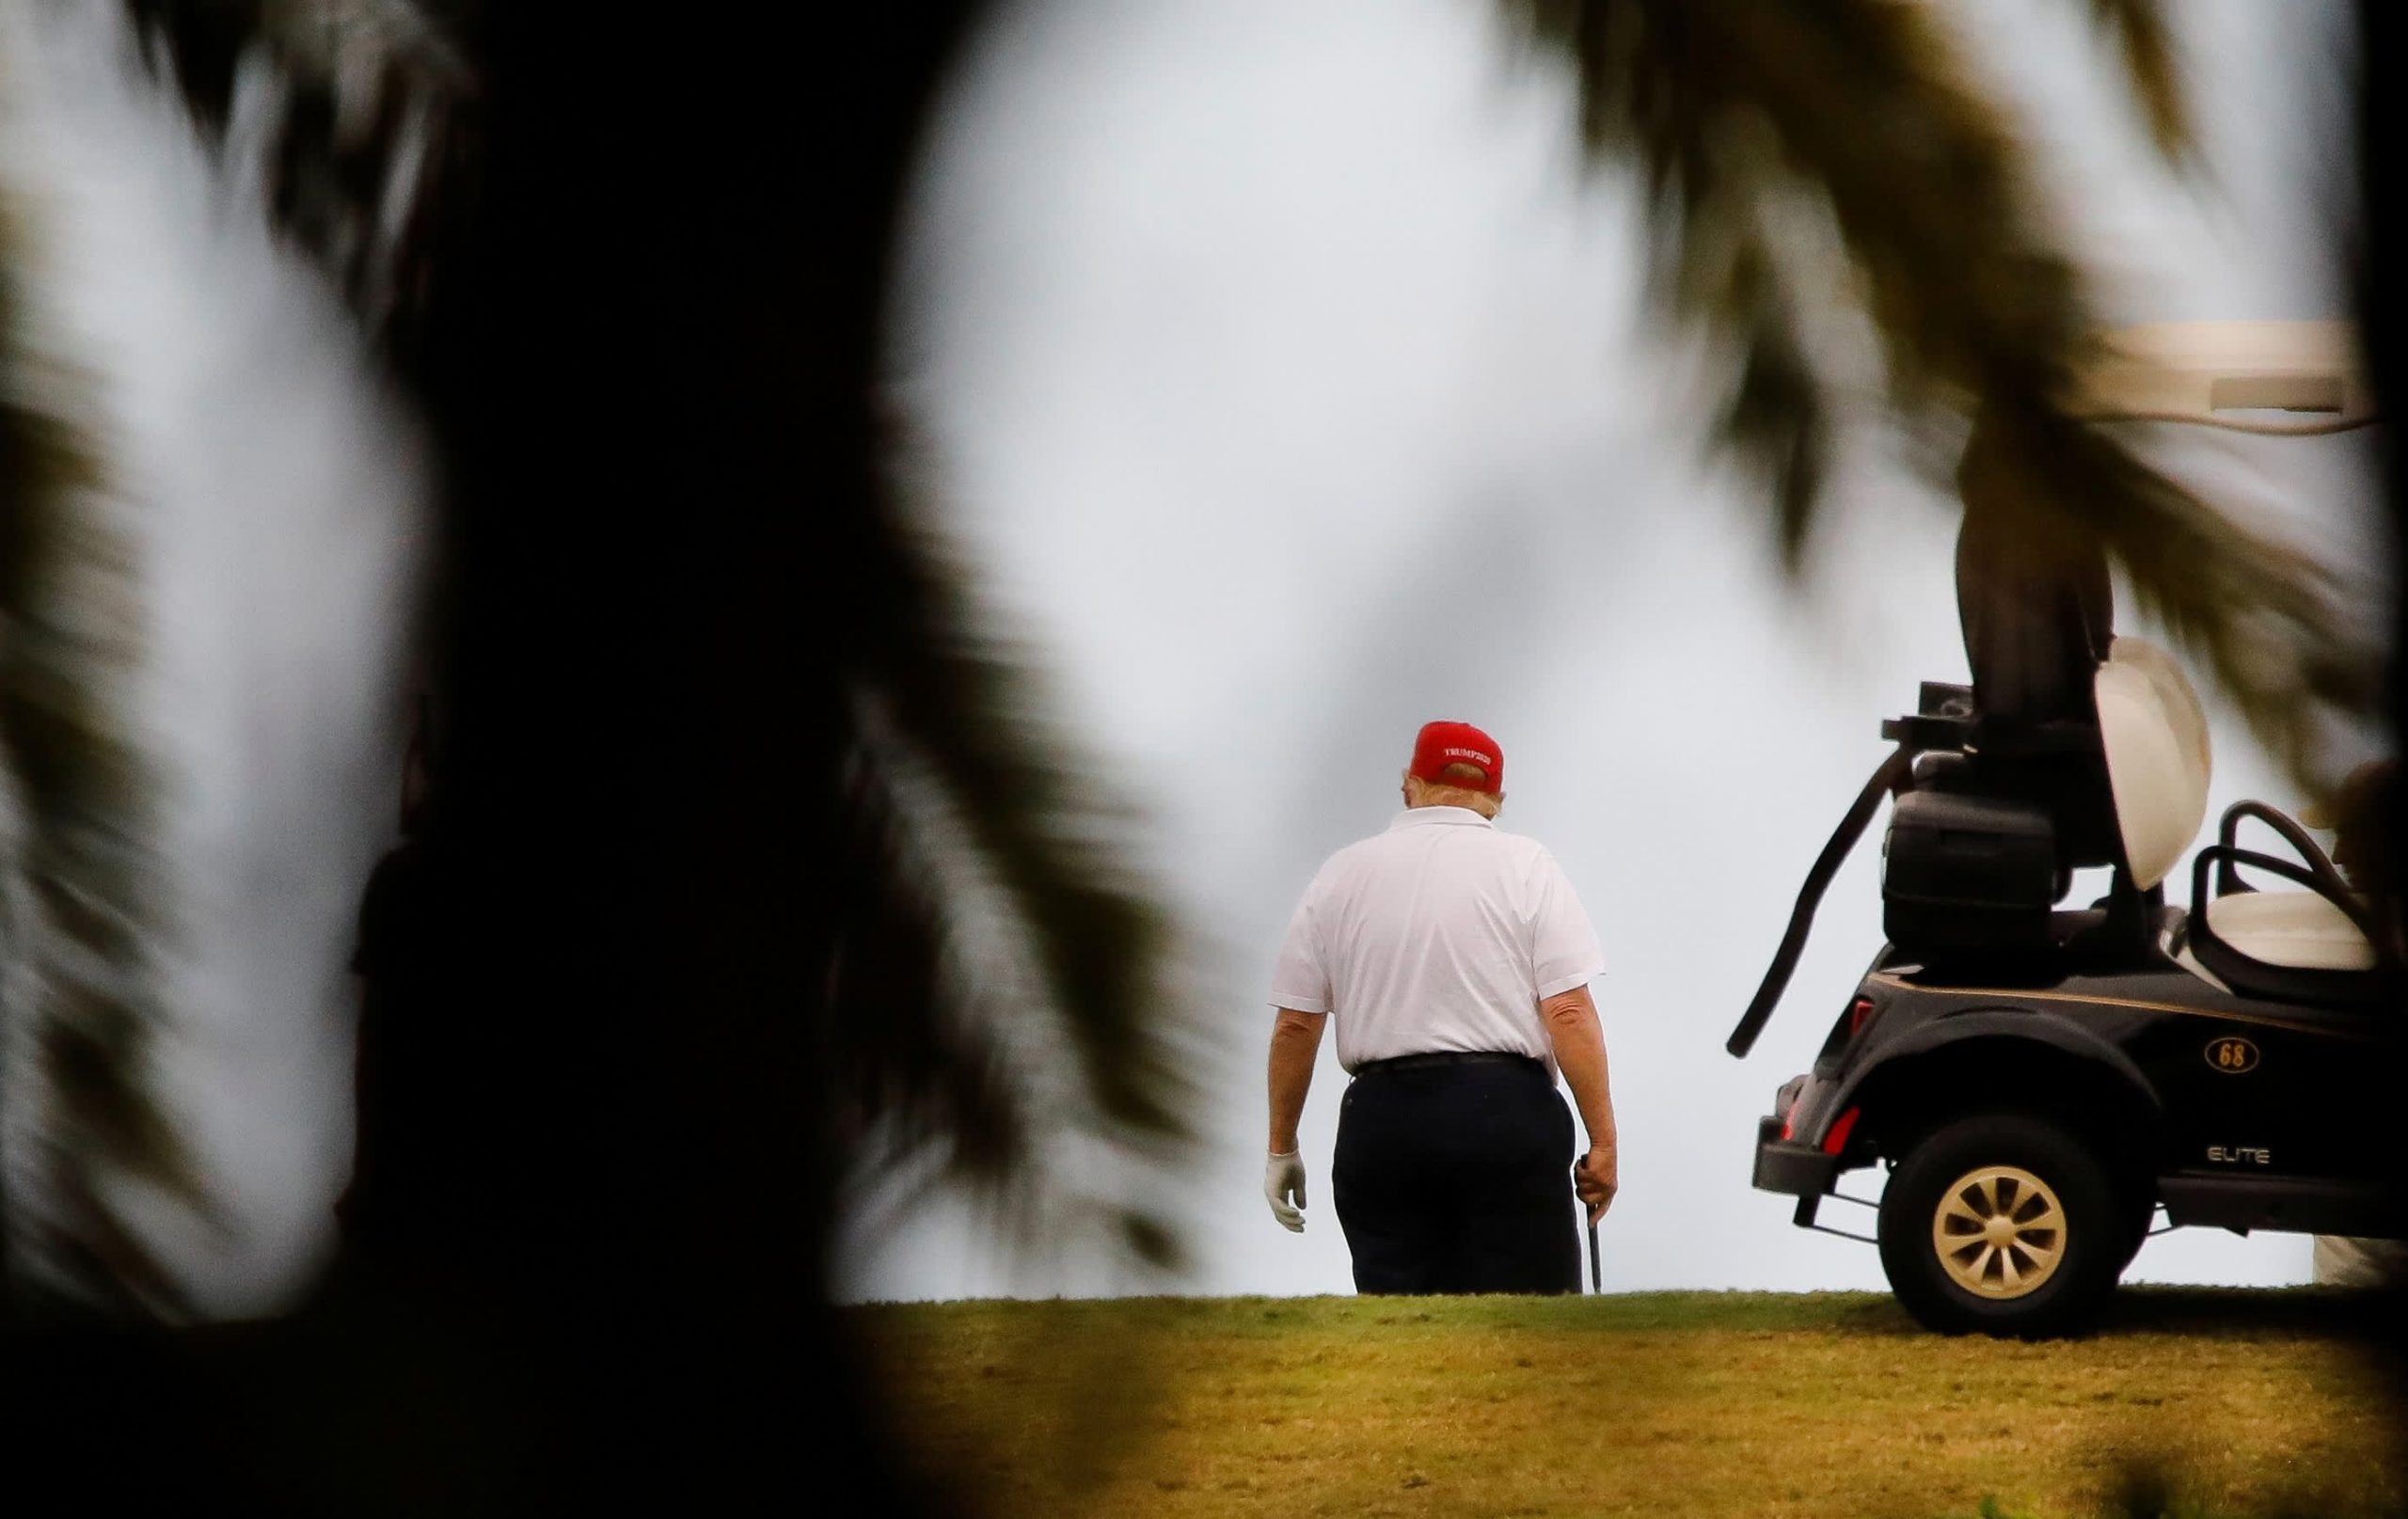 palm-beach-county-looks-to-end-trump-golf-course-lease-after-u-s-capitol-riot